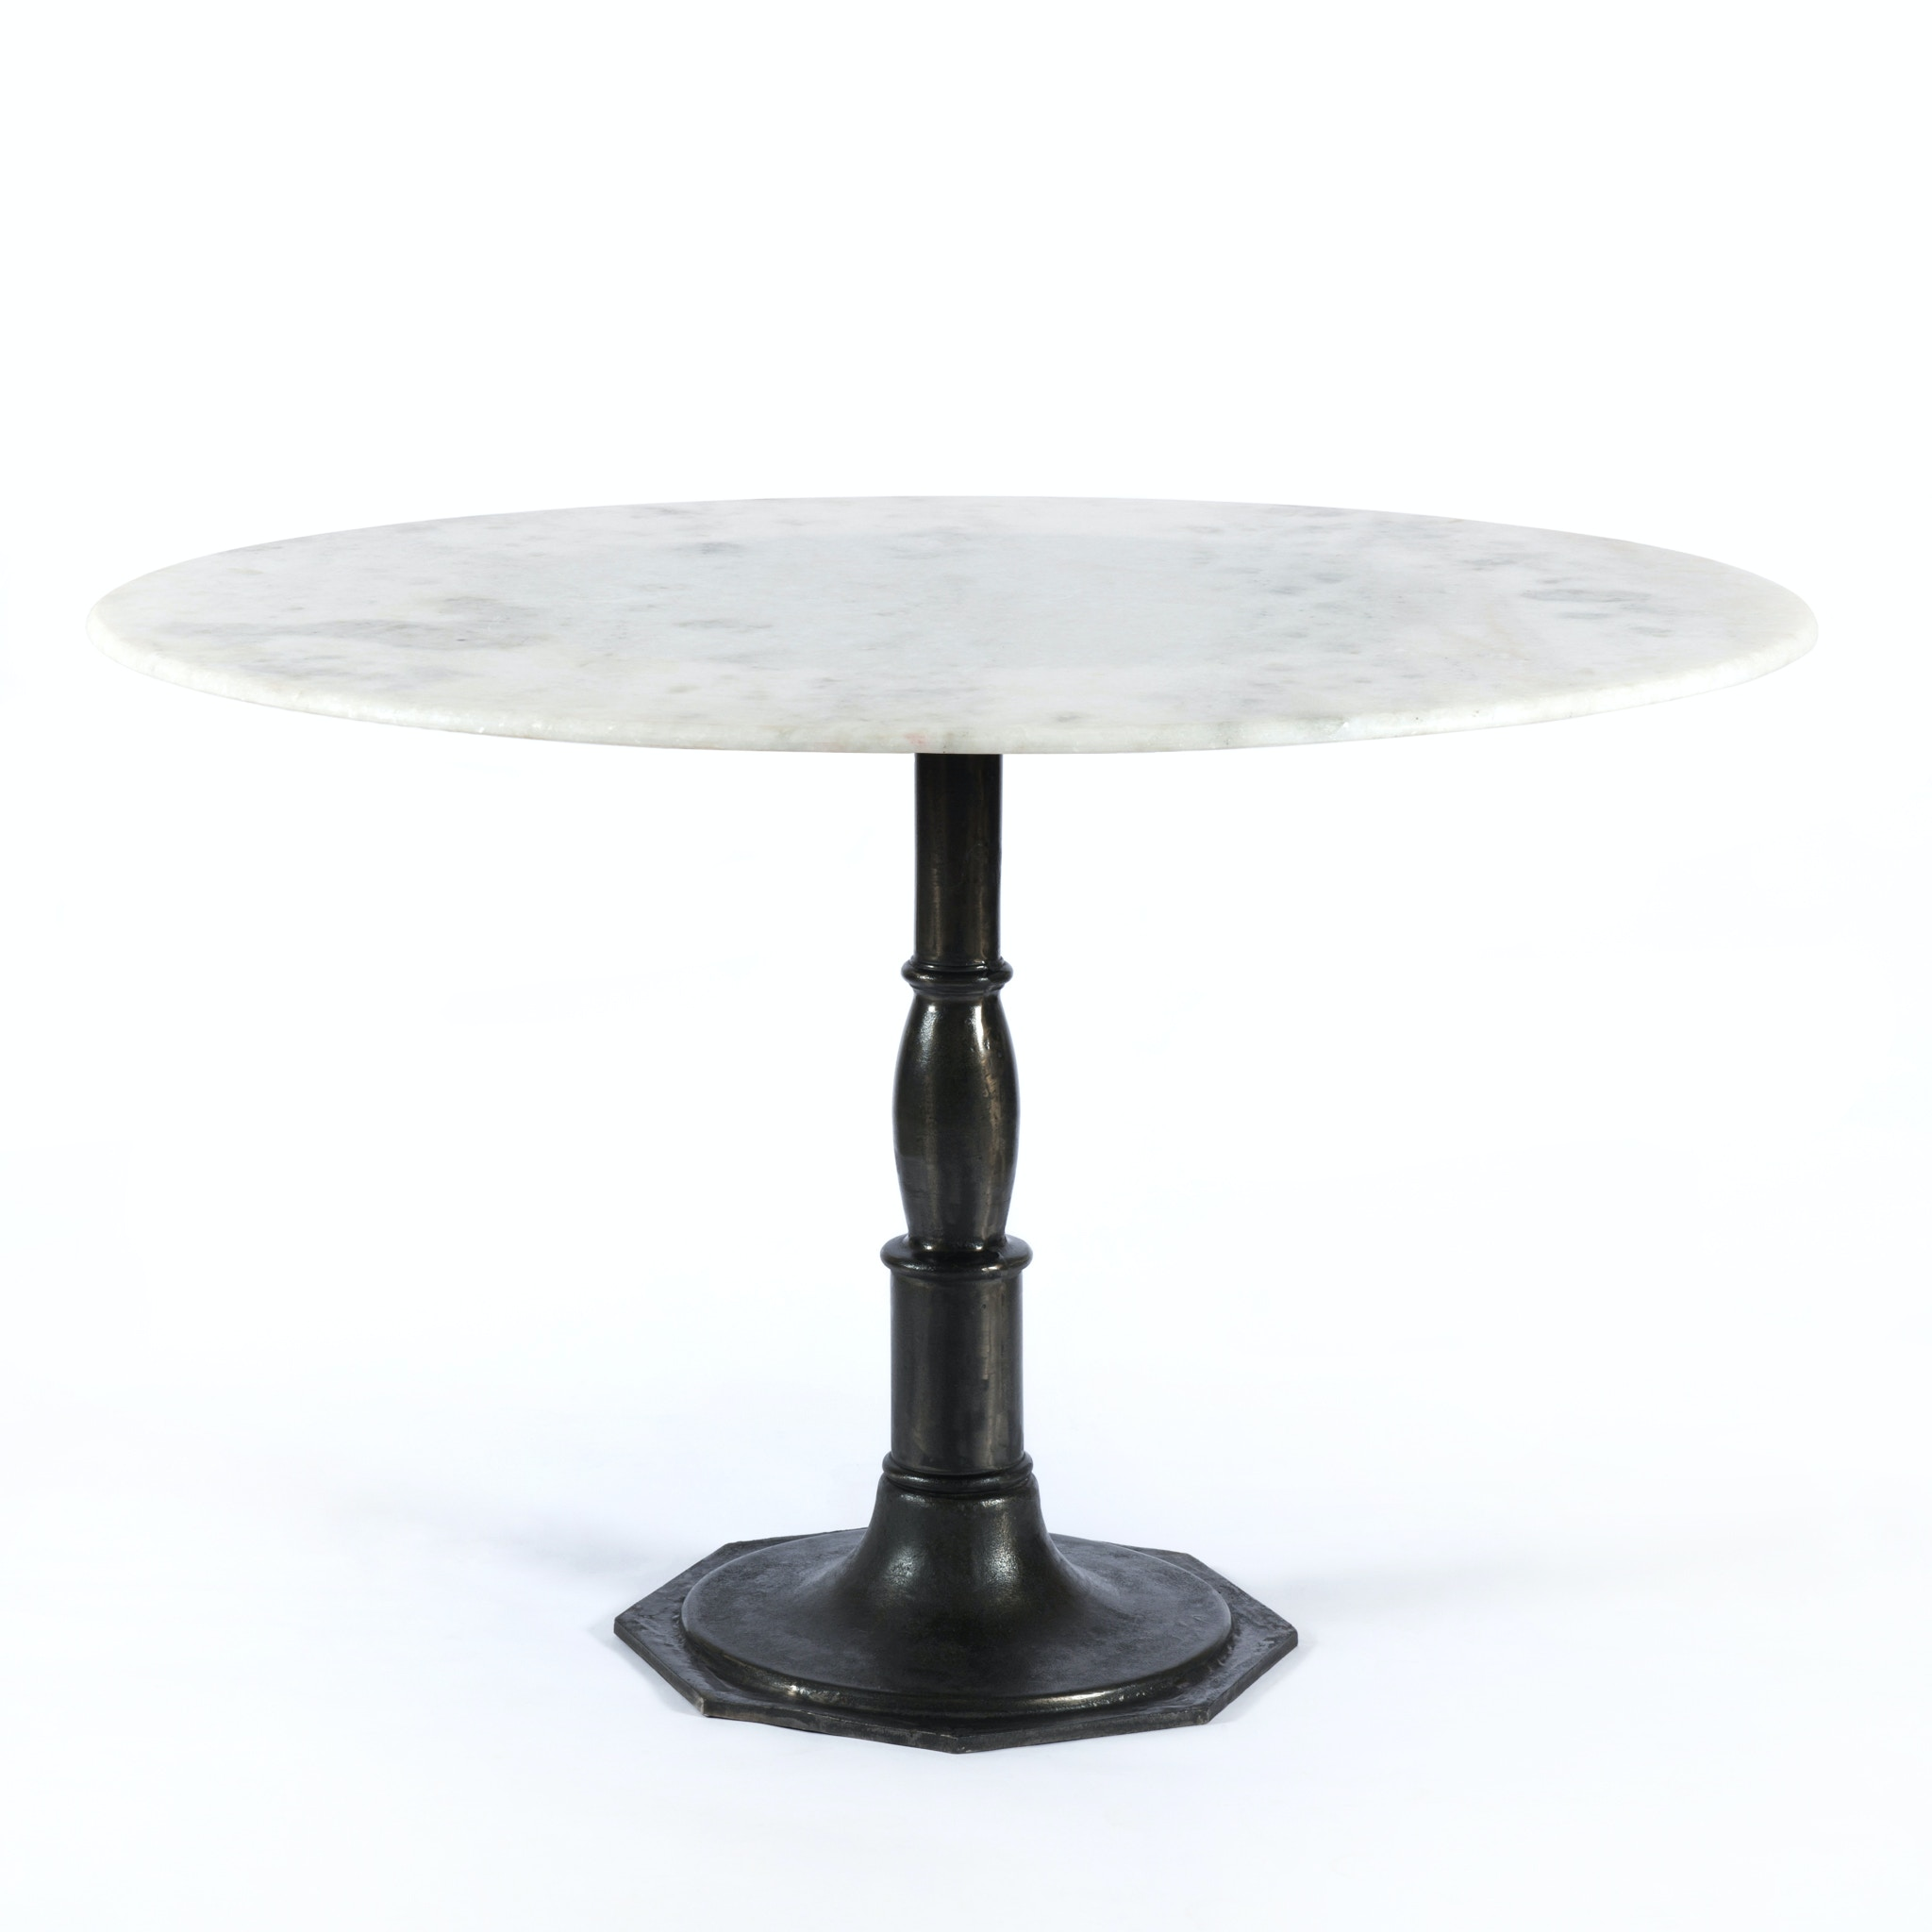 Four Hands Furniture Lucy Round Dining Table 48 Marble Carbo IRCK 085